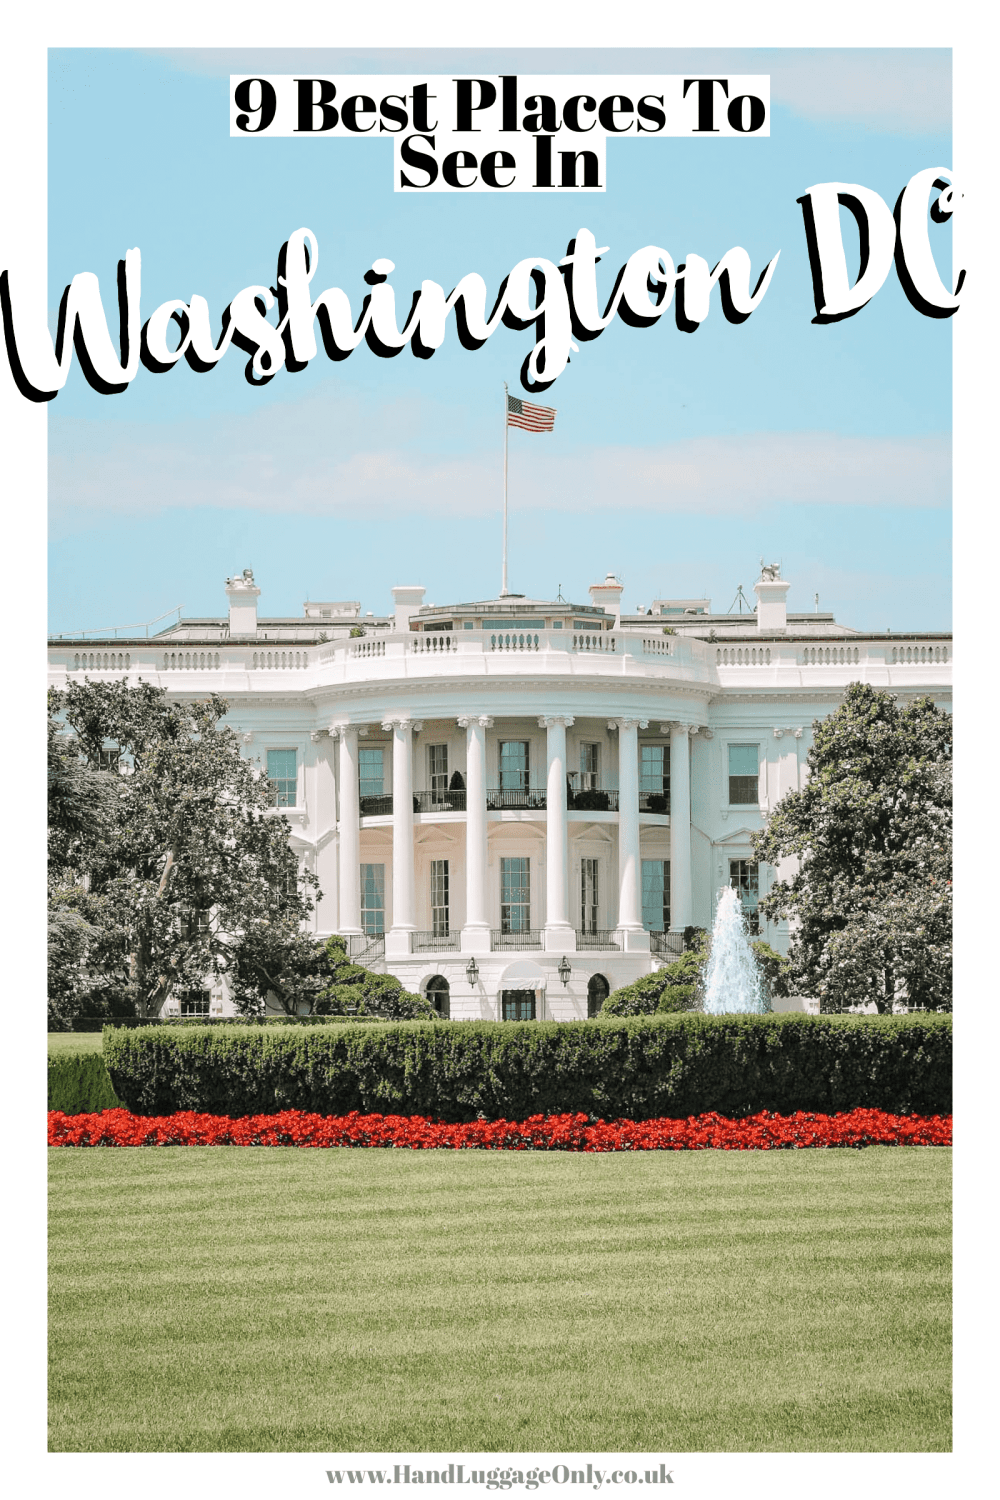 Best Places To See In Washington D.C